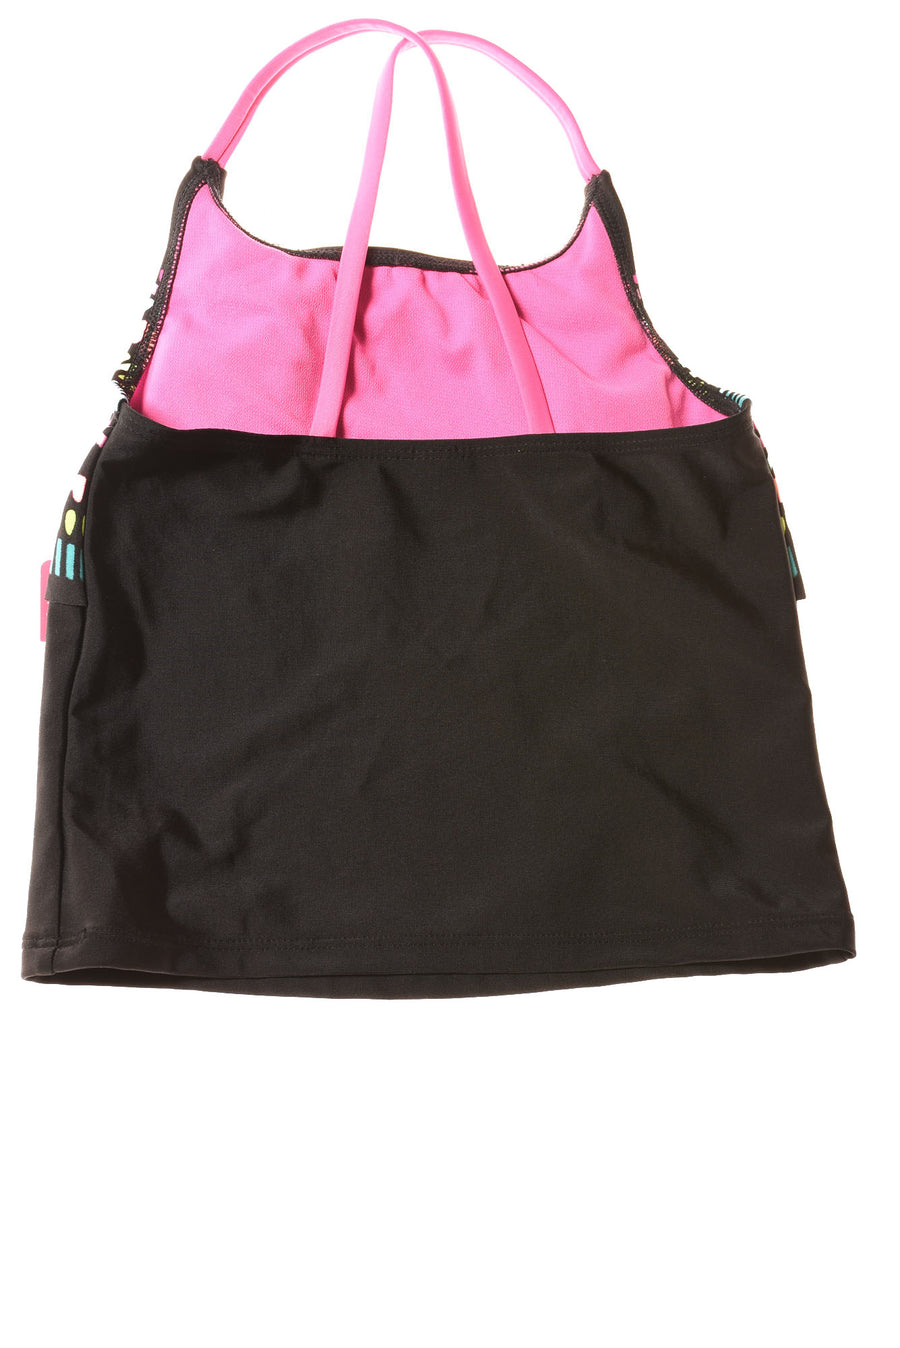 NEW Xhilaration Girl's Swimwear Medium Black / Print